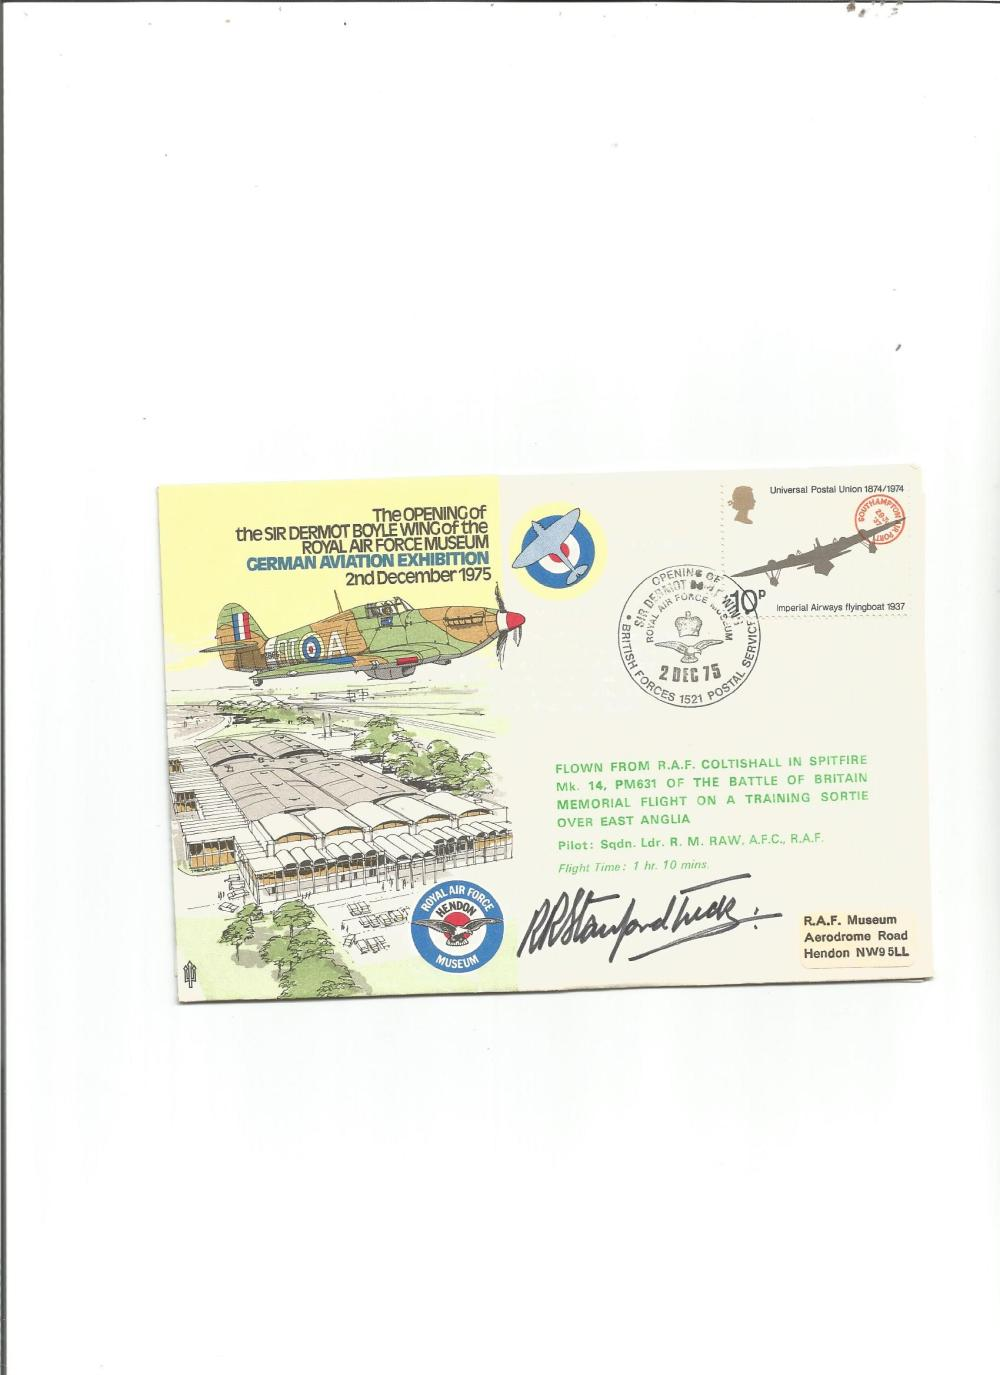 Wg Cdr Robert Stanford Tuck DSO DFC Battle of Britain fighter ace signed RAF Museum cover. Good